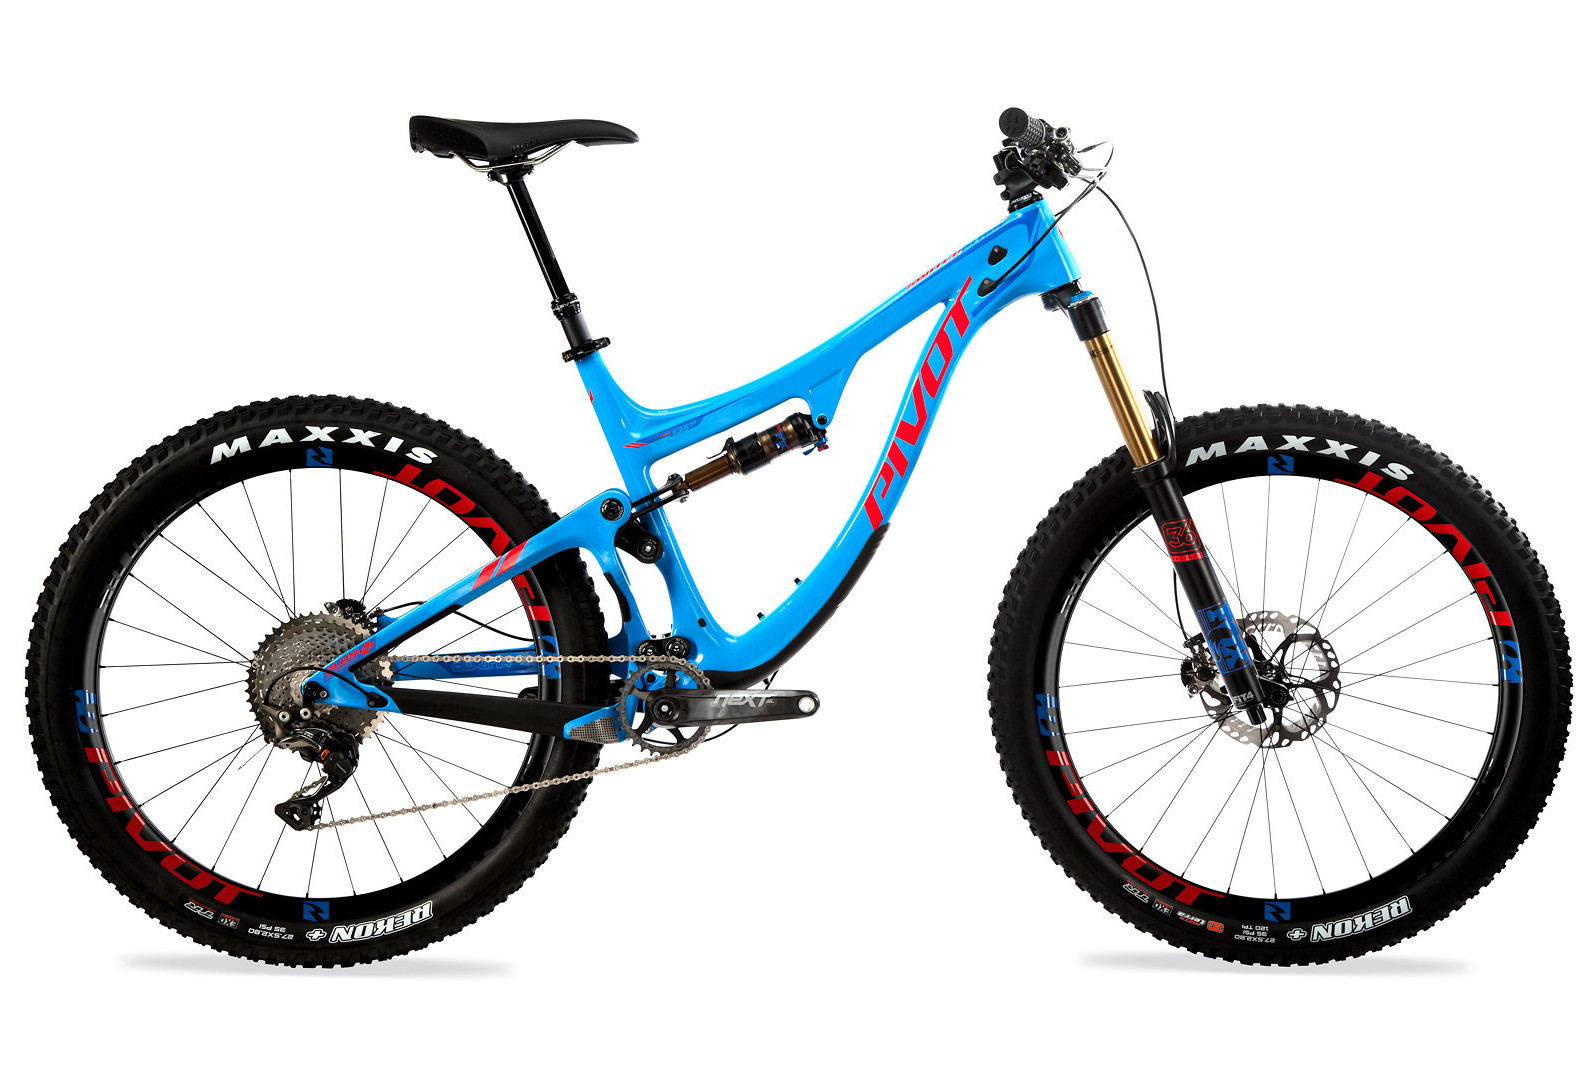 s1600_Switchblade_275_plus_carbon_blue_XTR